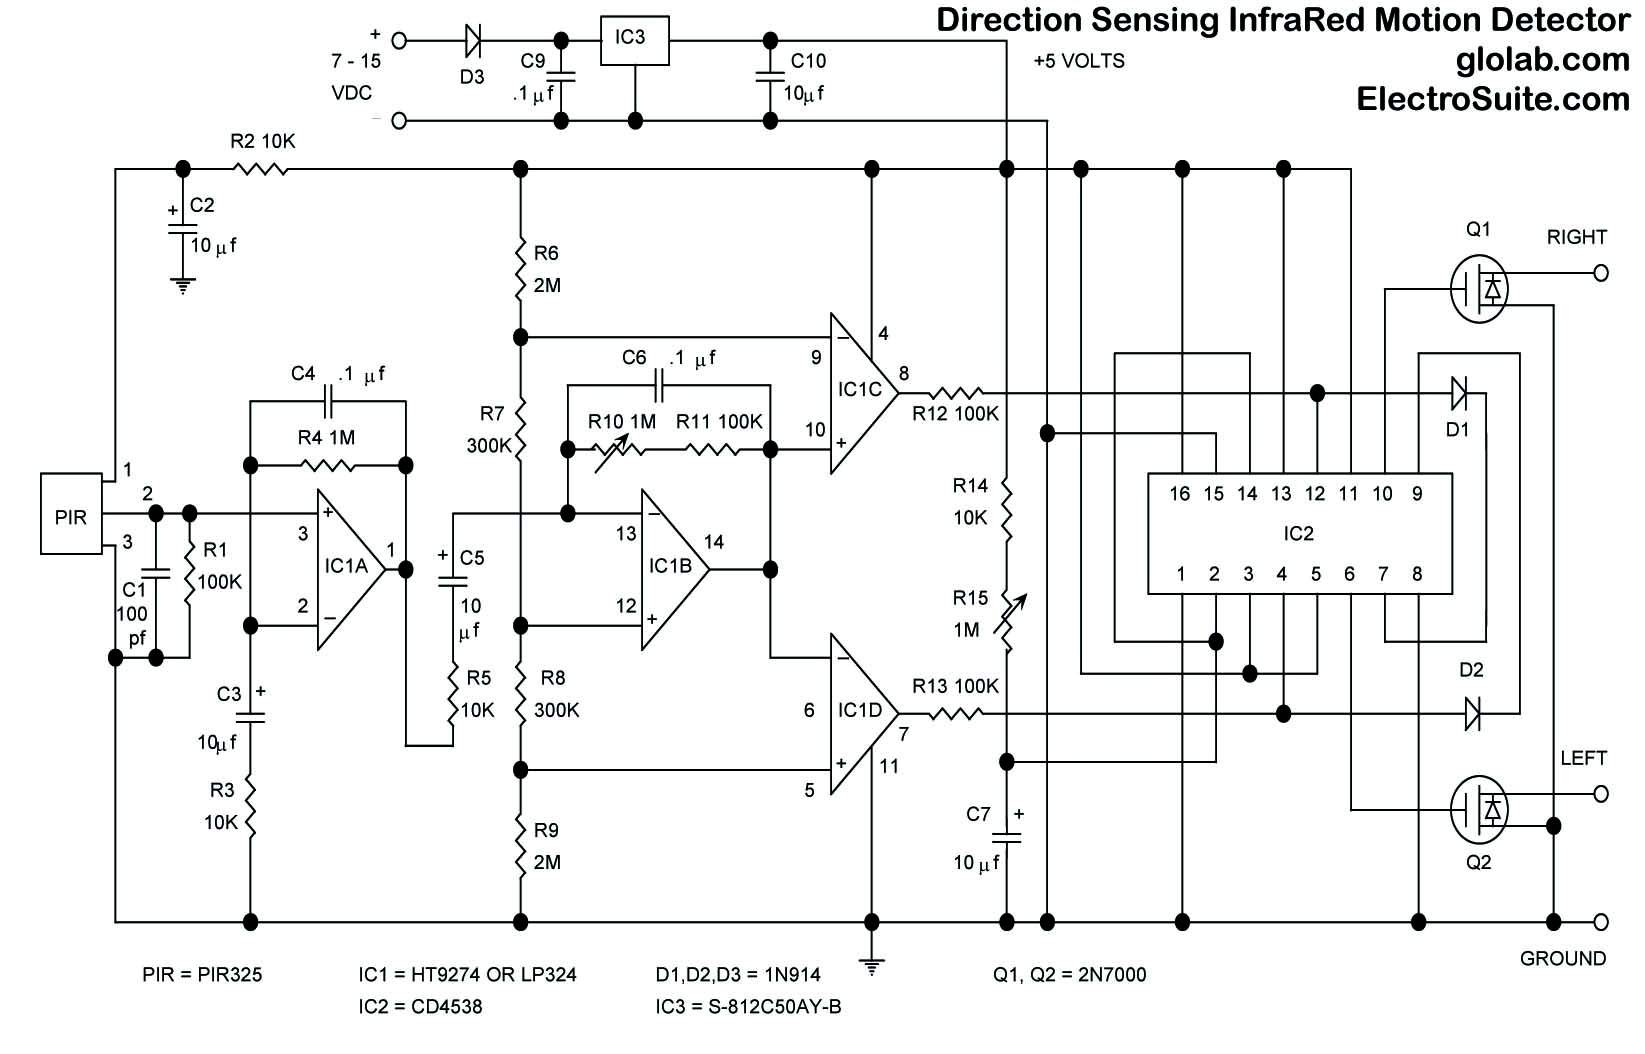 Schematic Motion Detector With Flood Light Block Wiring Diagram 1986 Ford Cl9000 Cl 9000 Big Trucks Diagrams Schematics Brinks Sensor Circuit And Led Lights Outdoor Problem